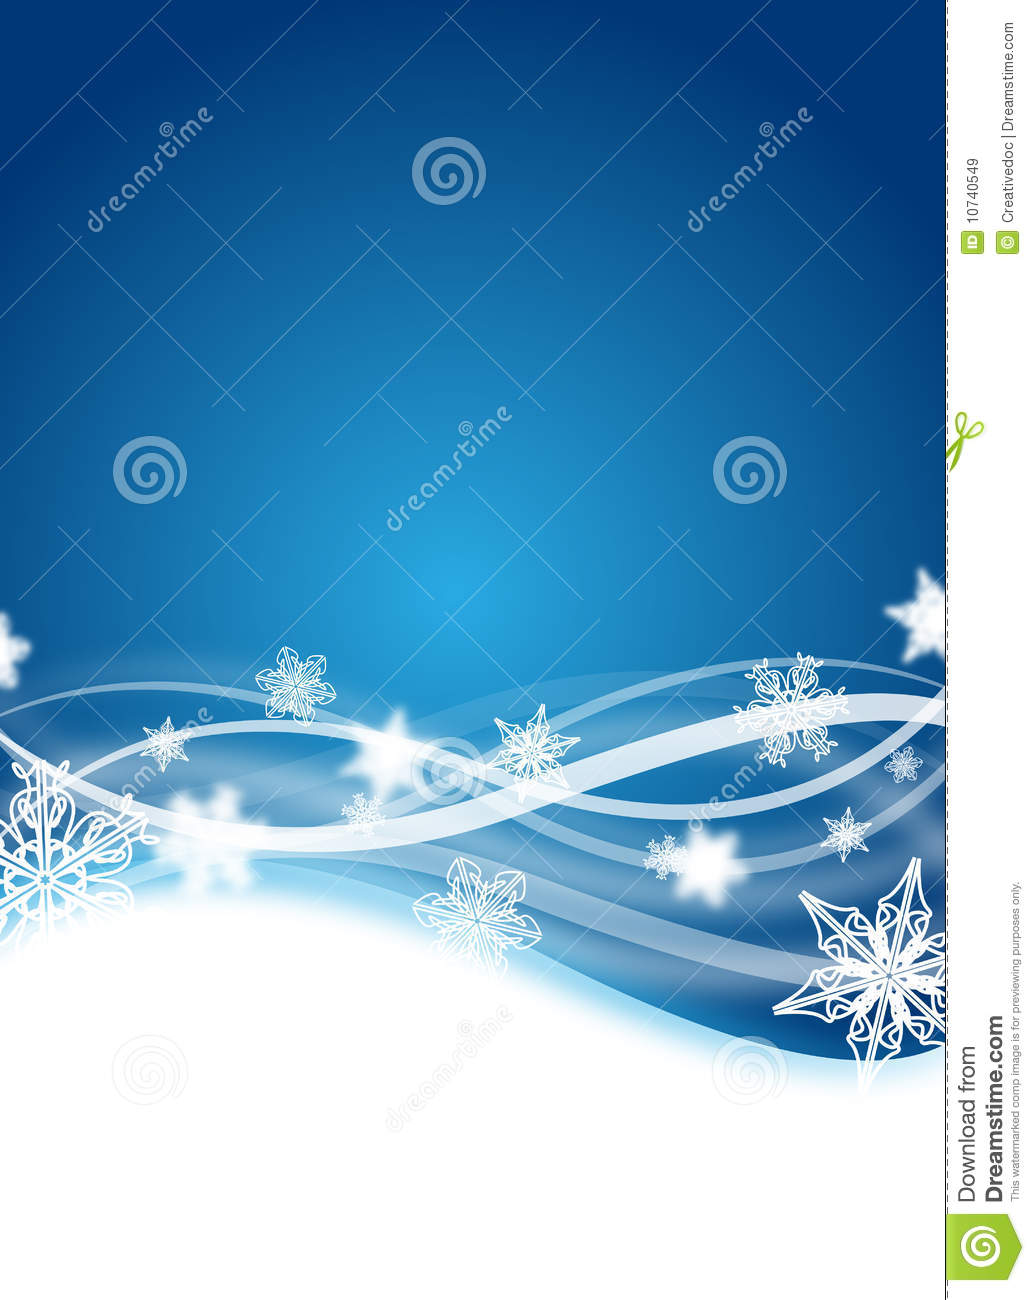 winter flyer royalty free stock images